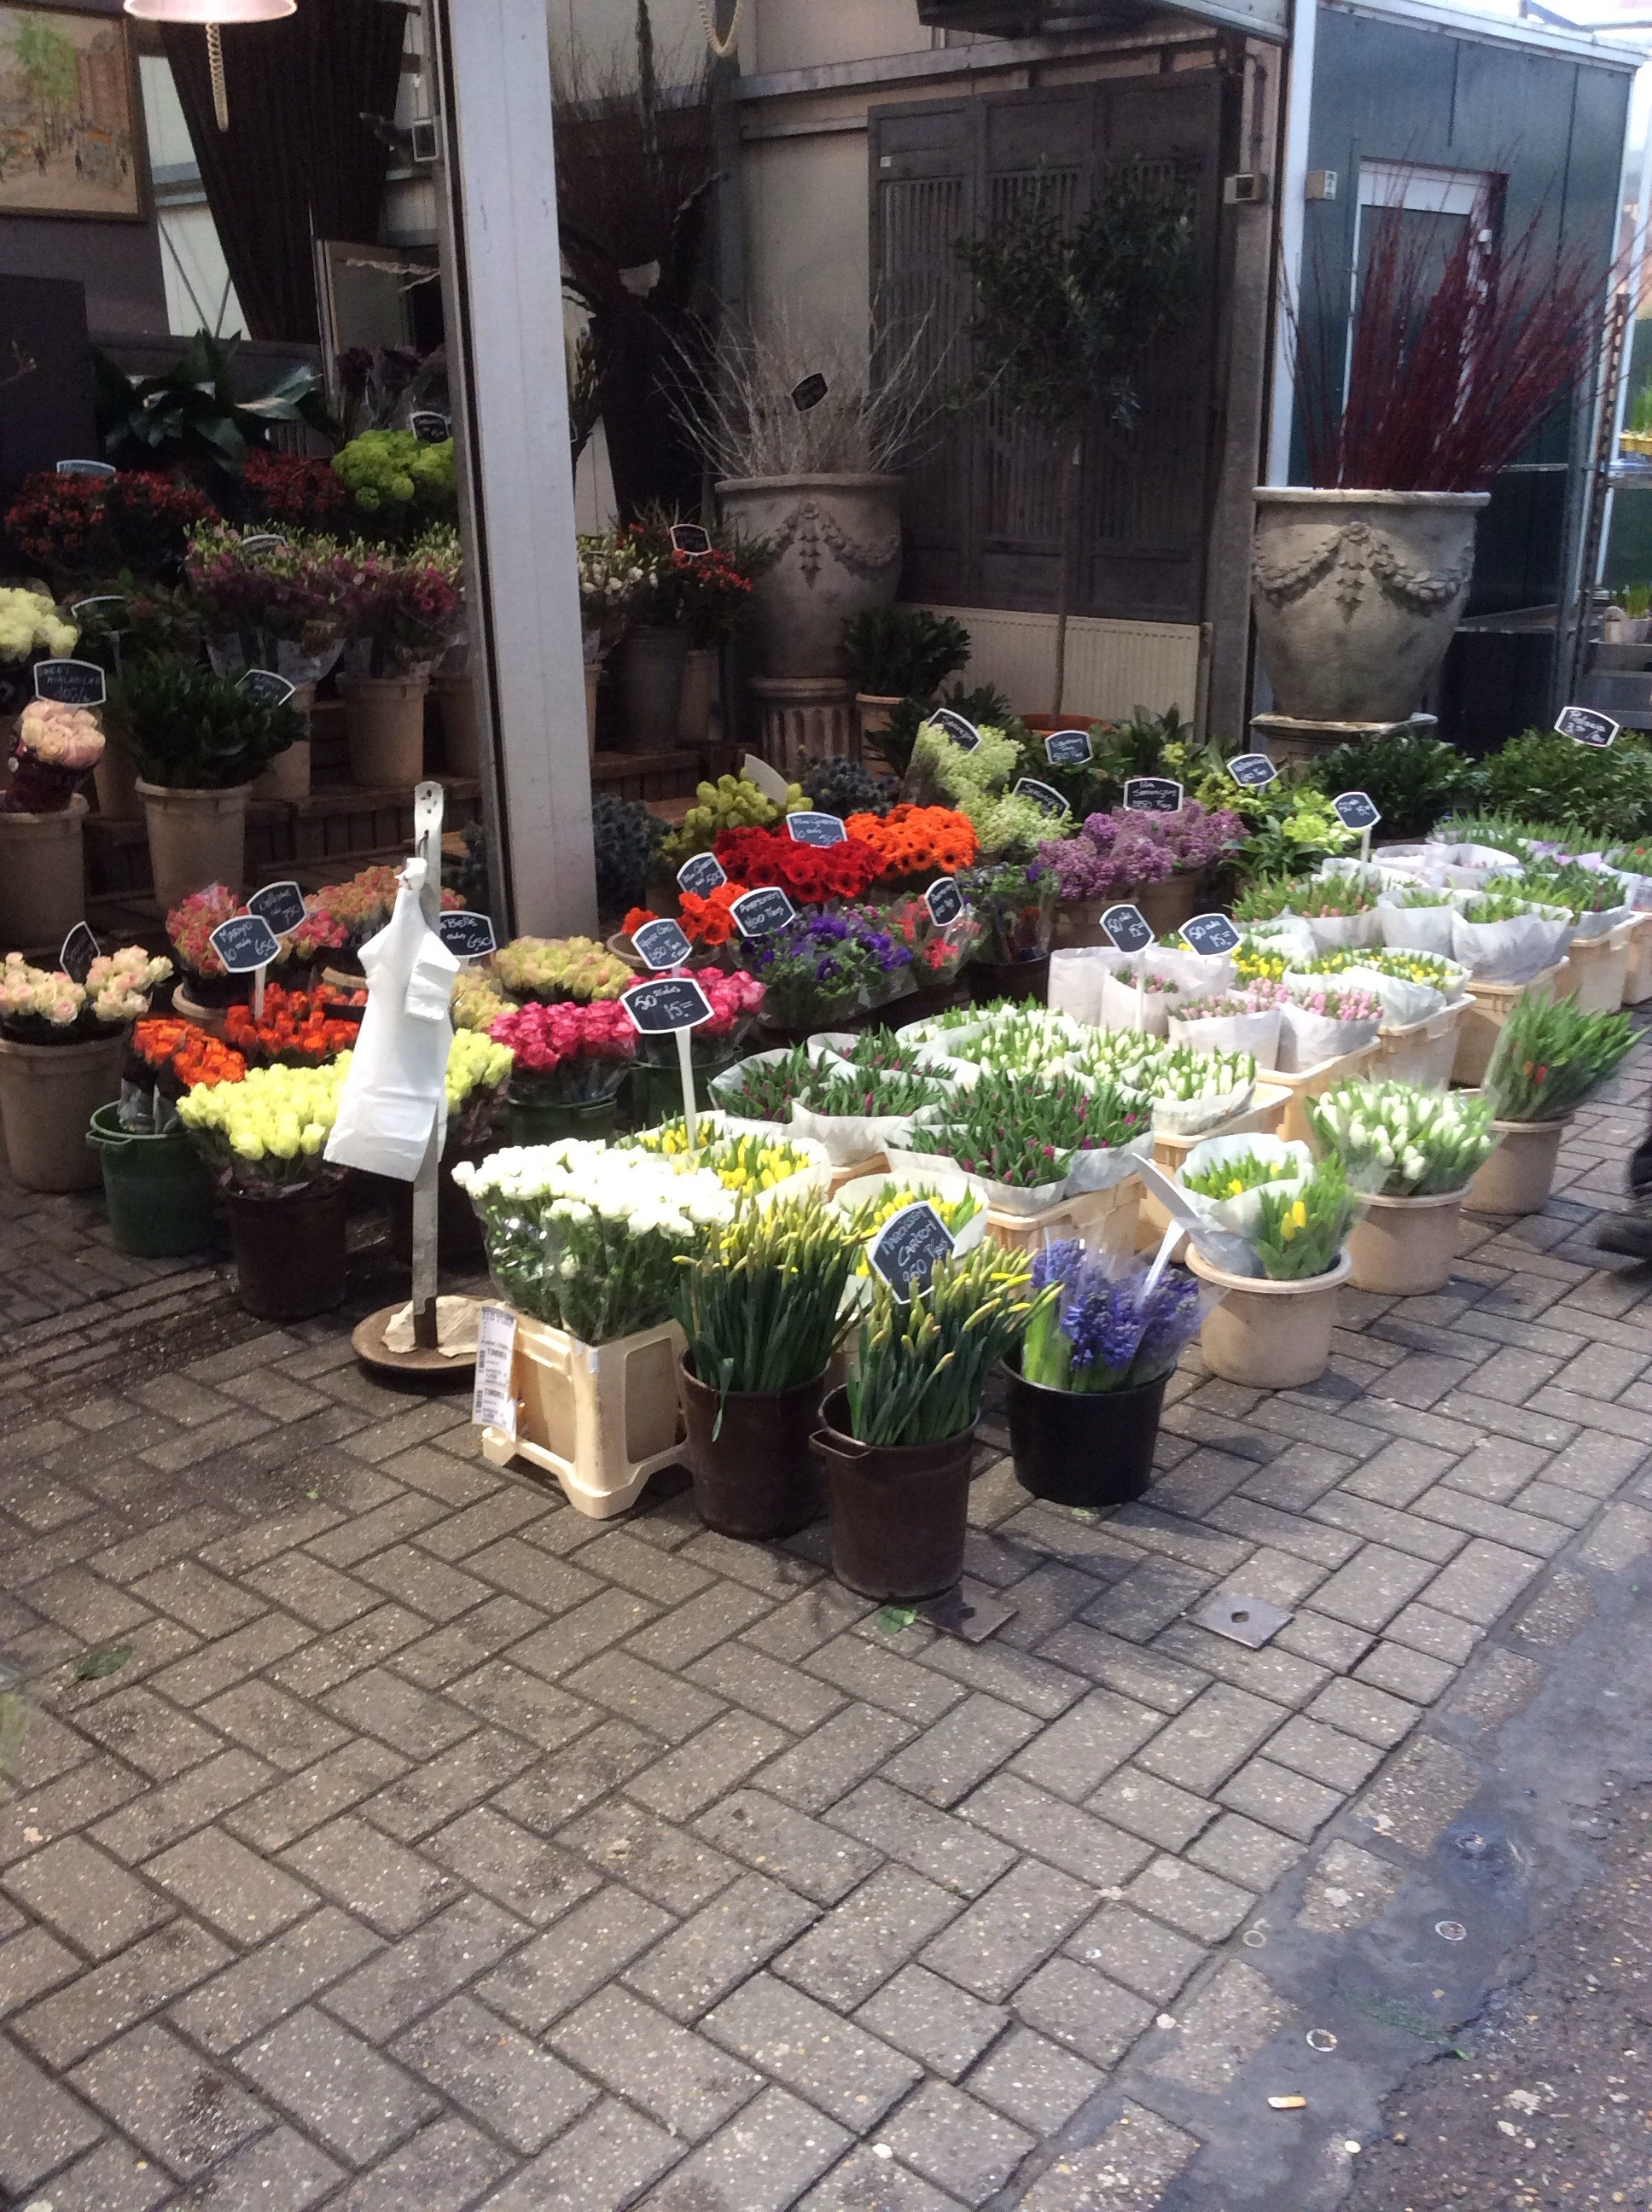 Some fresh flowers were also available